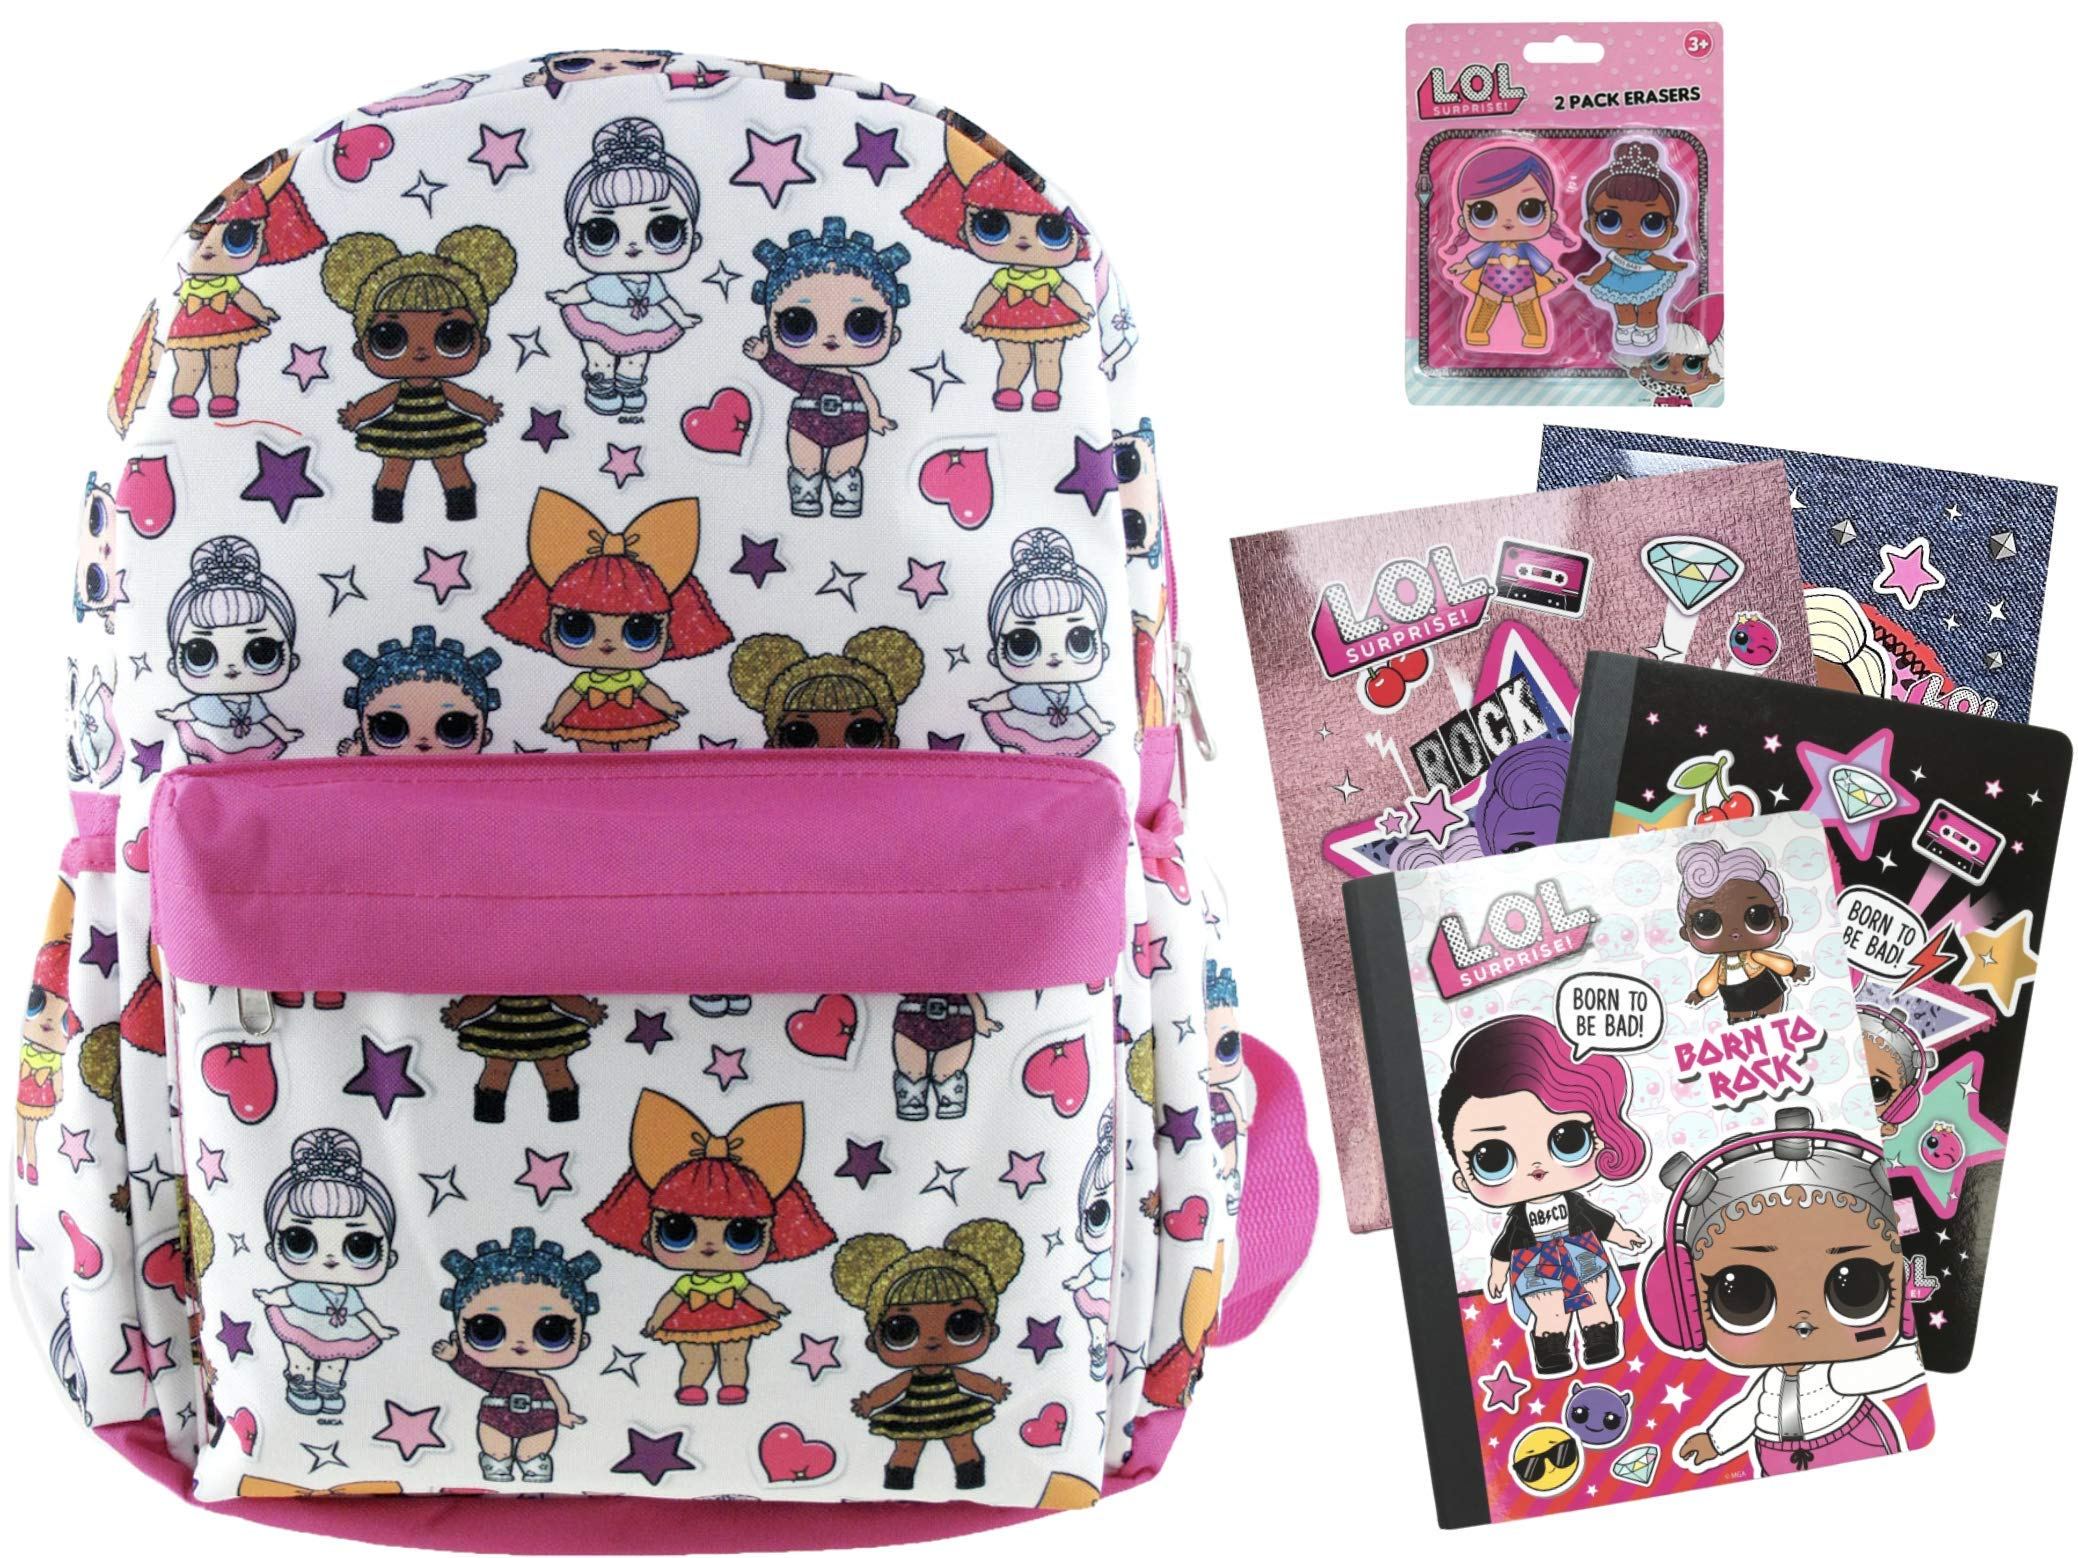 L.O.L. Surprise! 16'' Backpack Plus 2 Folders, 2 Composition Notebooks and 2 Pack of Jumbo Erasers